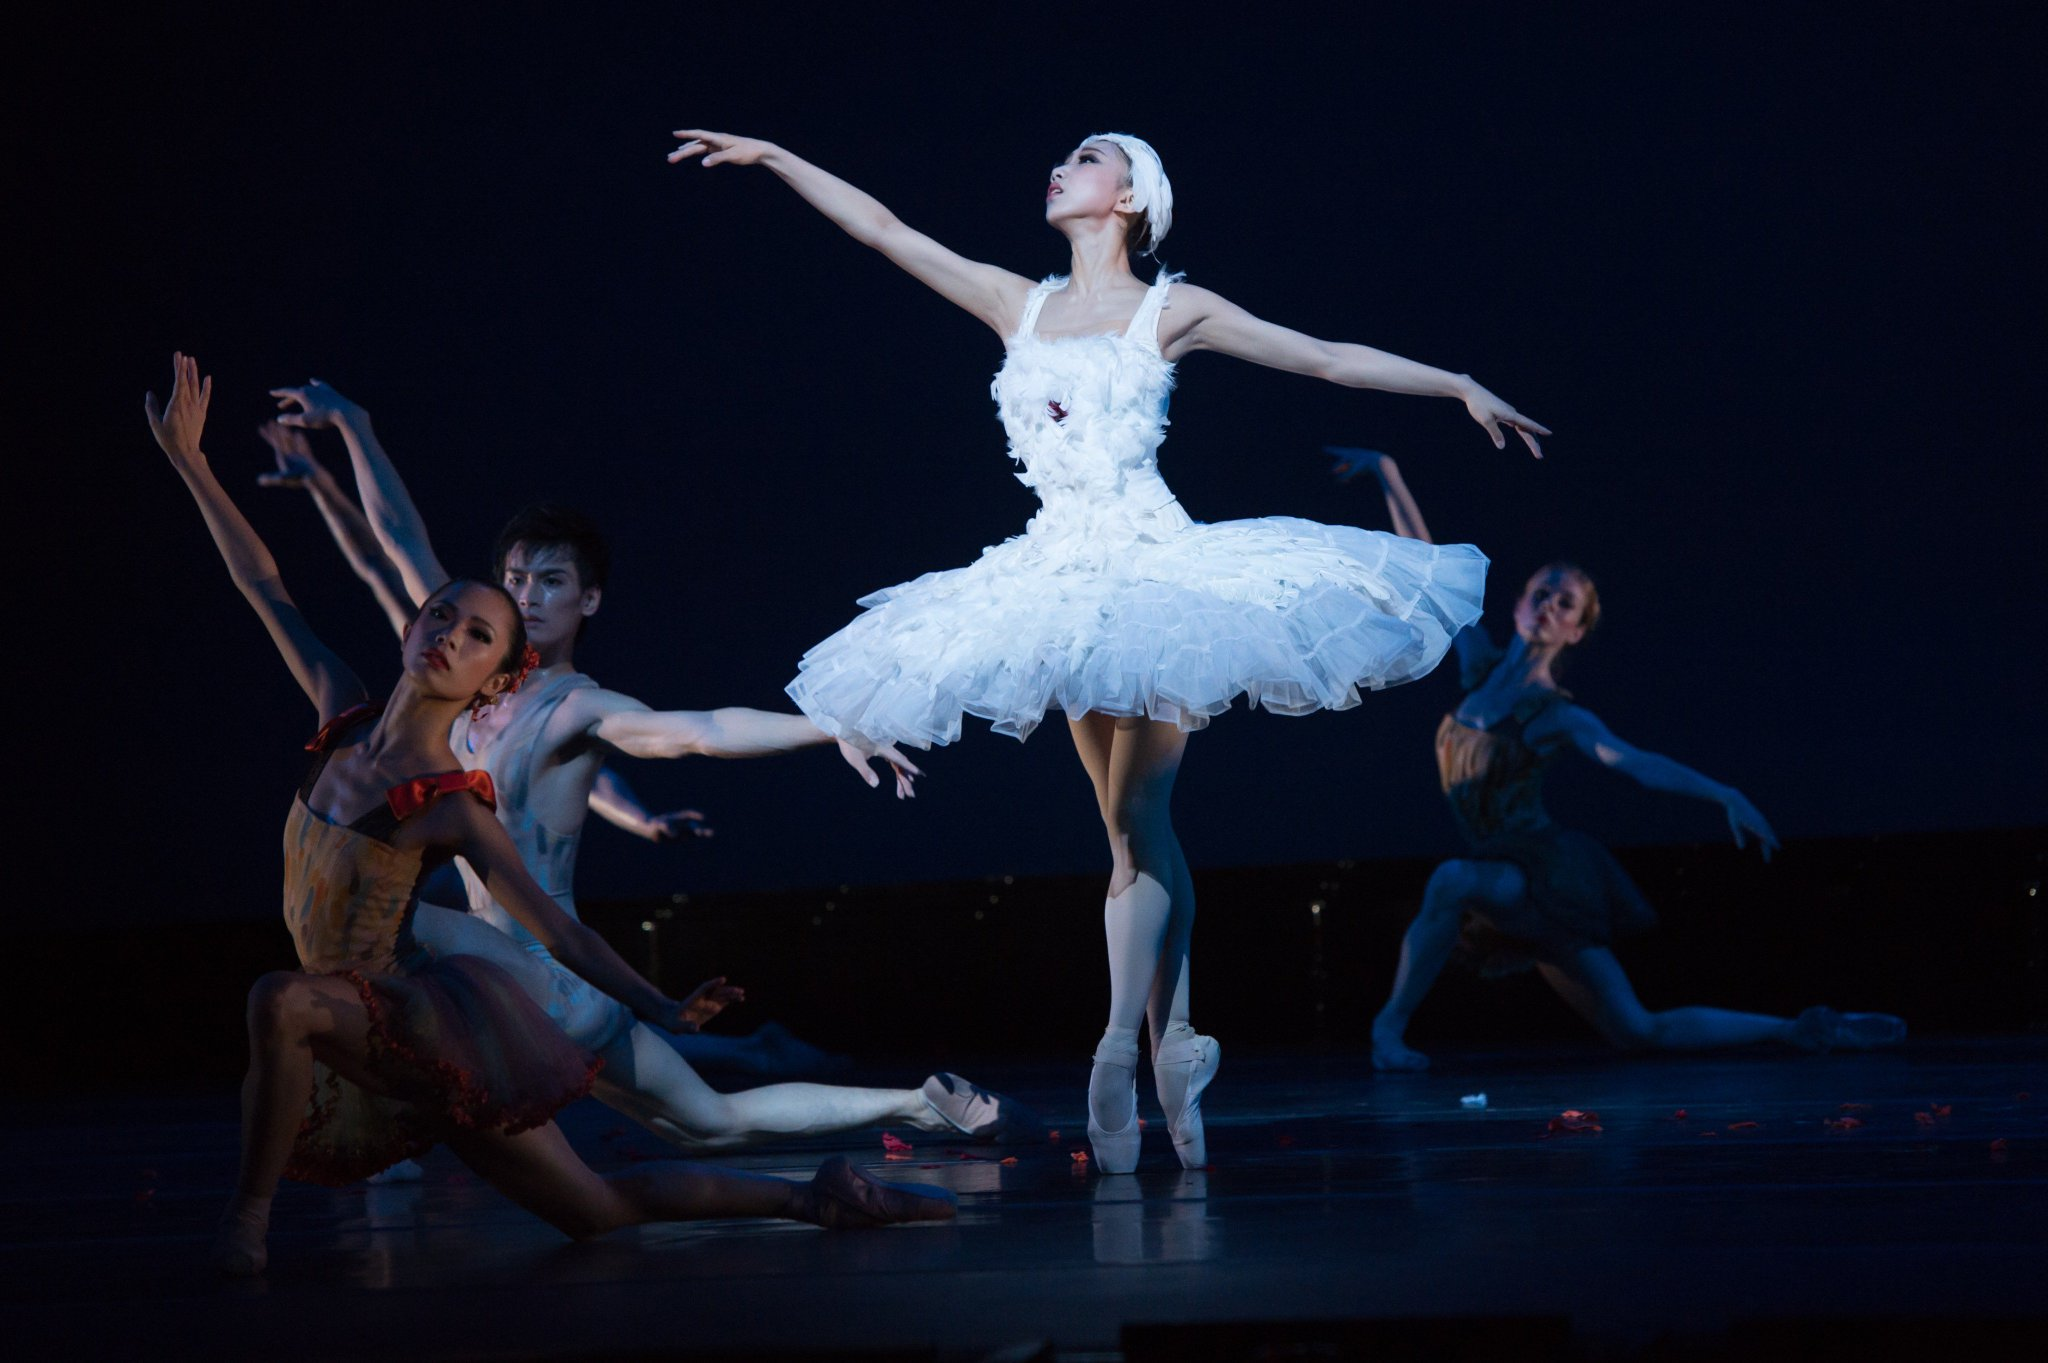 Reloaded twaddle – RT @HongKongBallet: Today's #TutuTuesday features the elegant Swan from Le Carna...